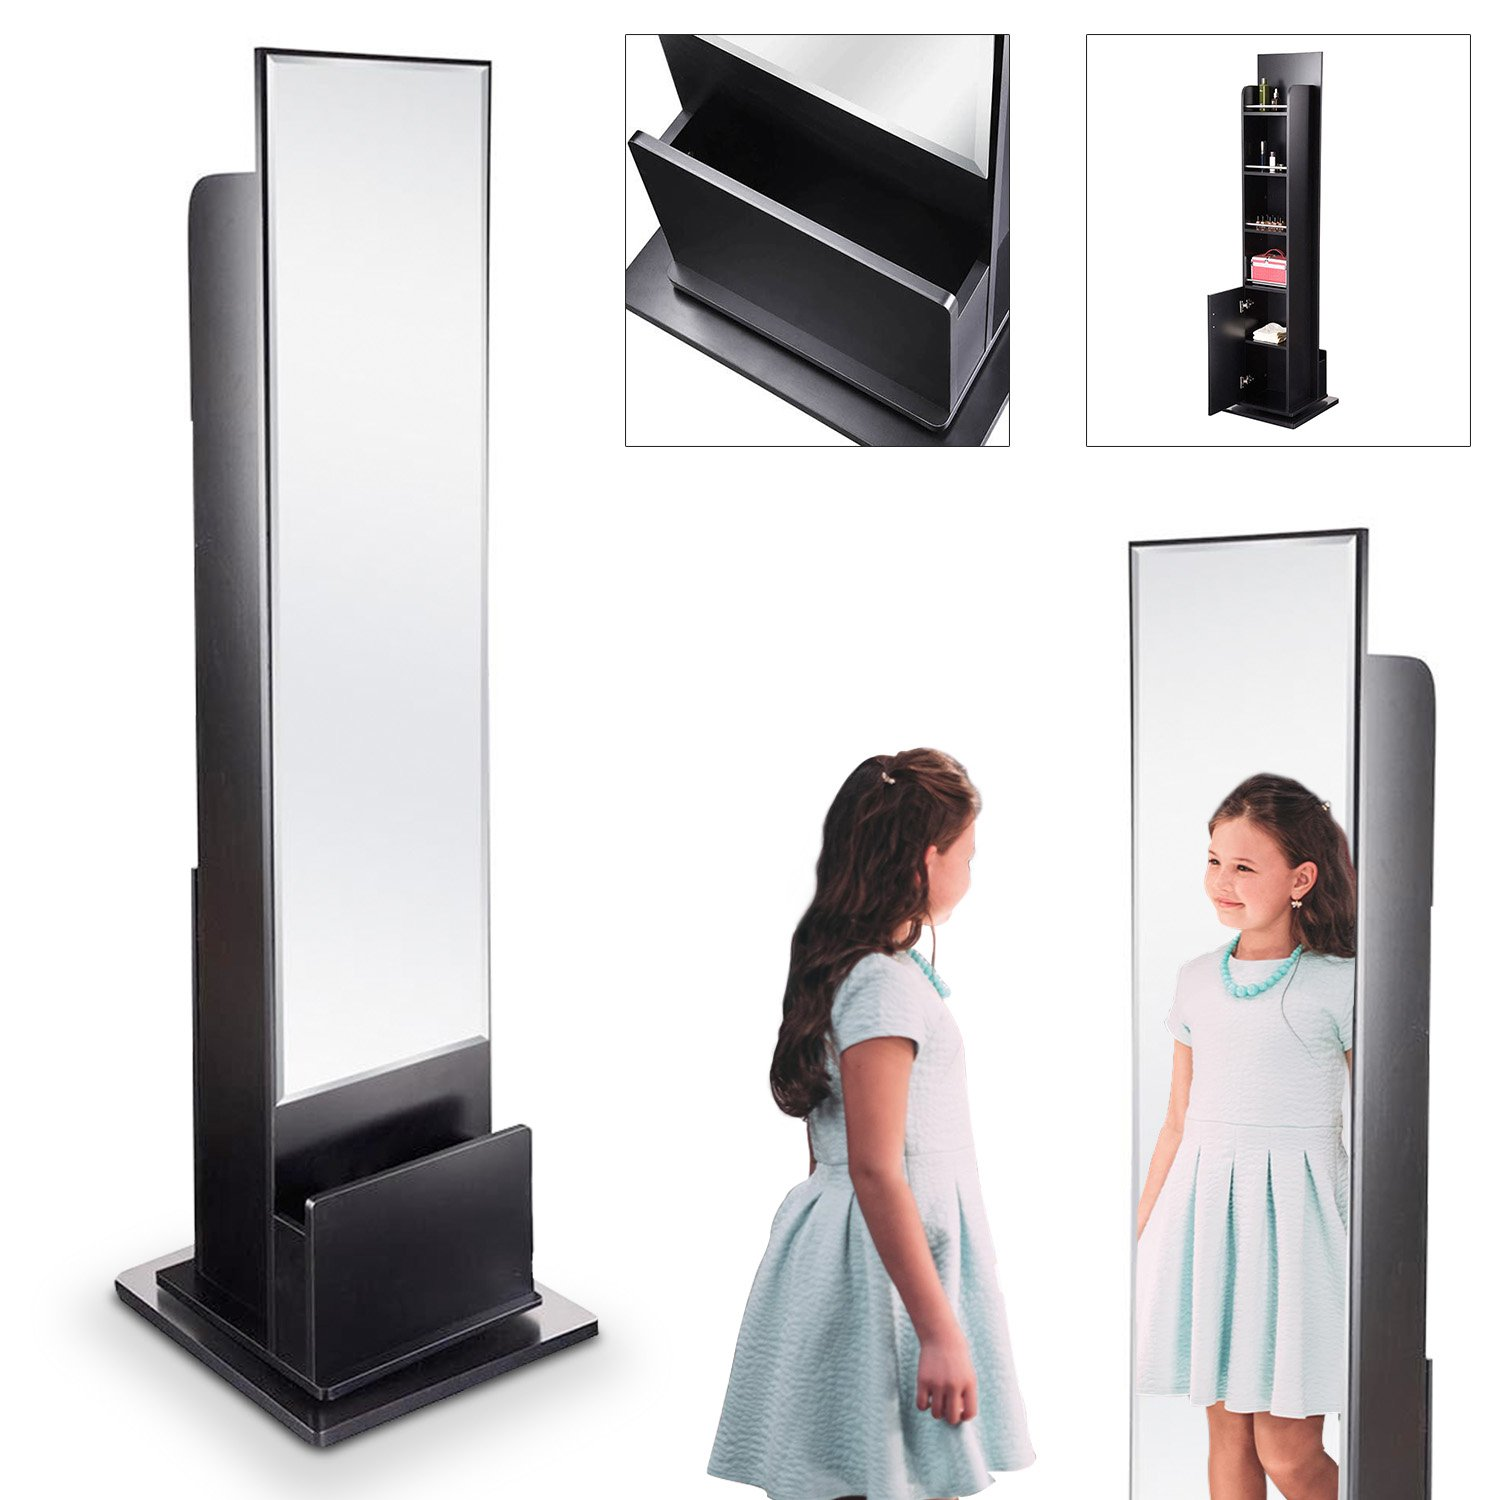 Koval Inc. 71 in Free-Standing Rotating Cabinet Storage W Mirror (Black)